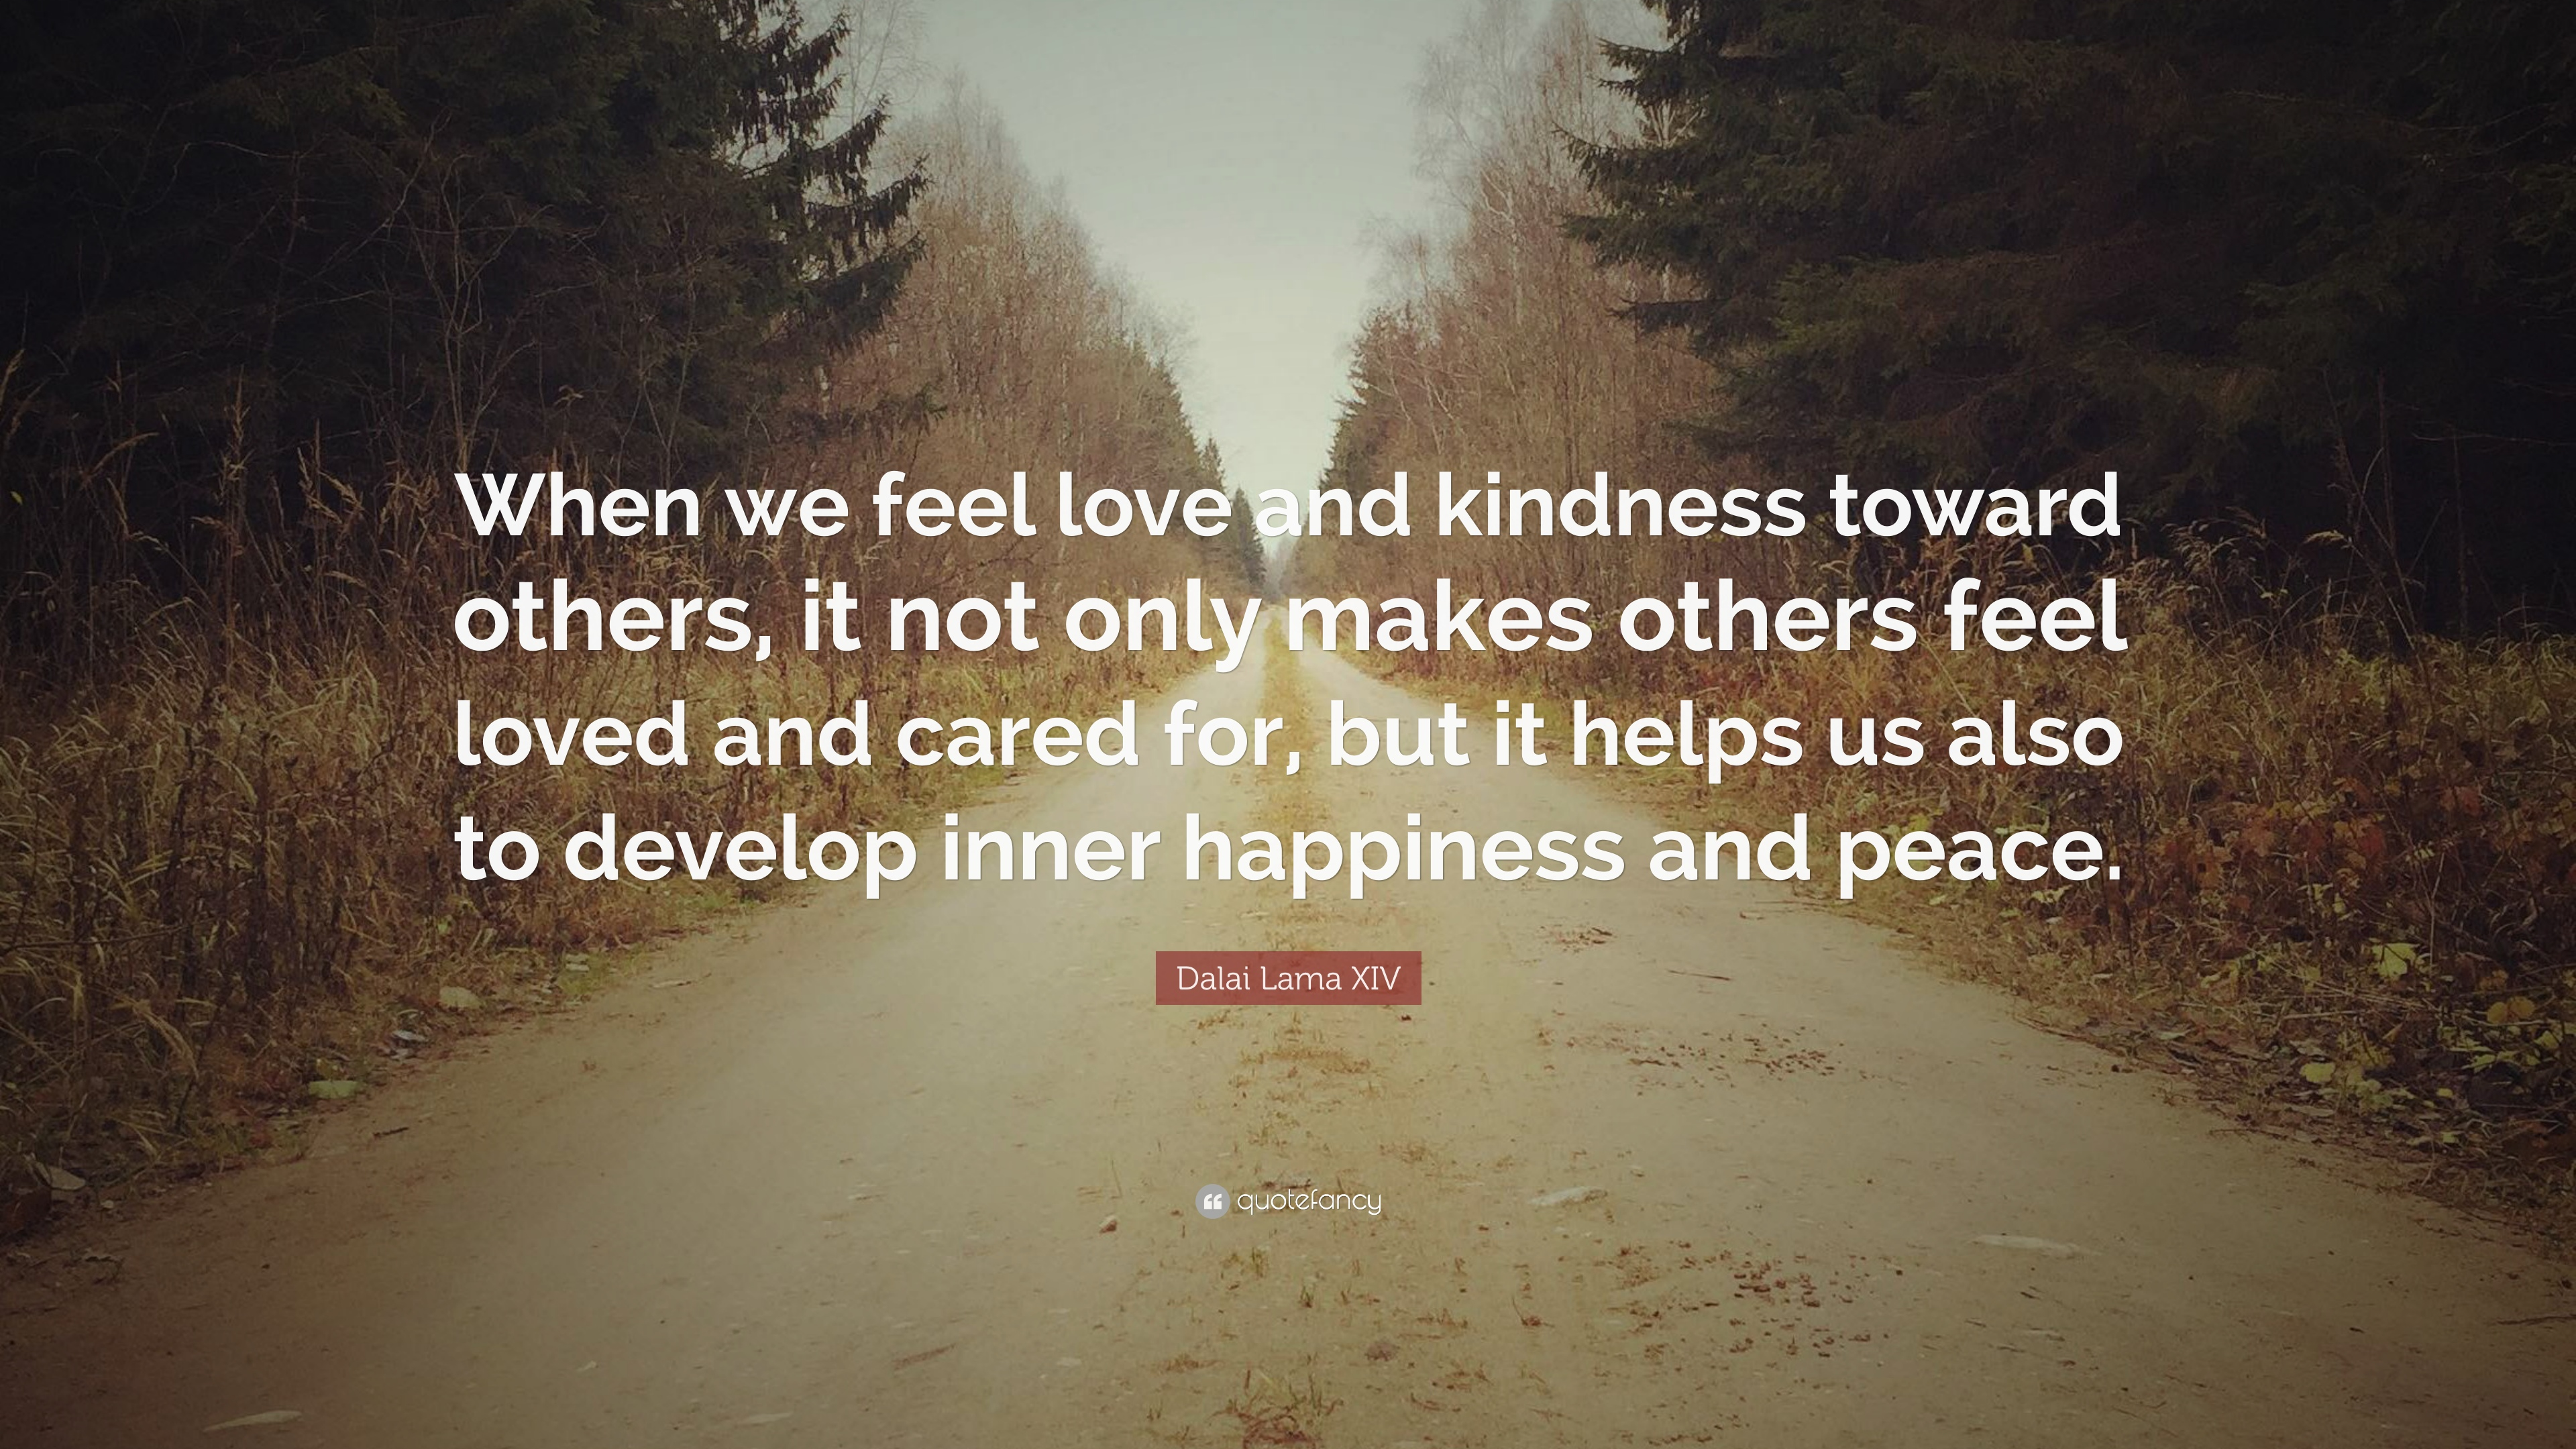 How to feel love for others